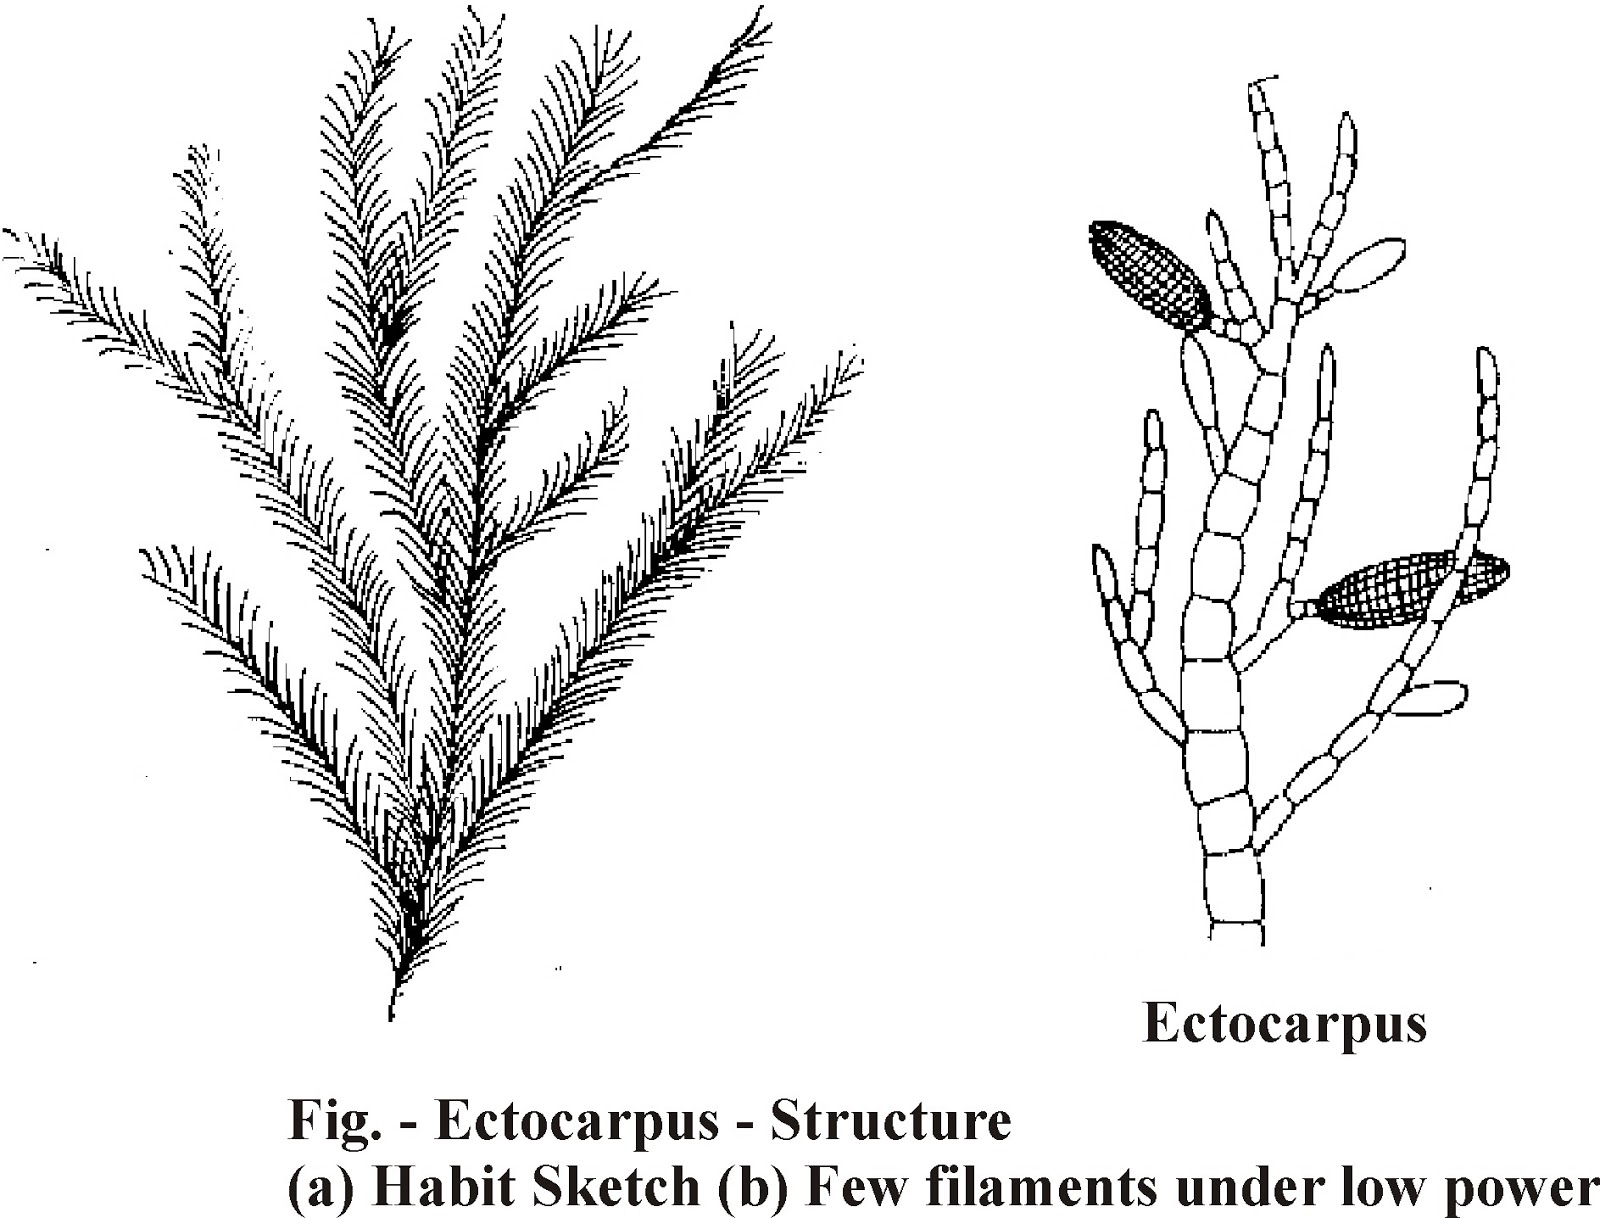 Plurilocular sporangia in ectocarpus asexual reproduction